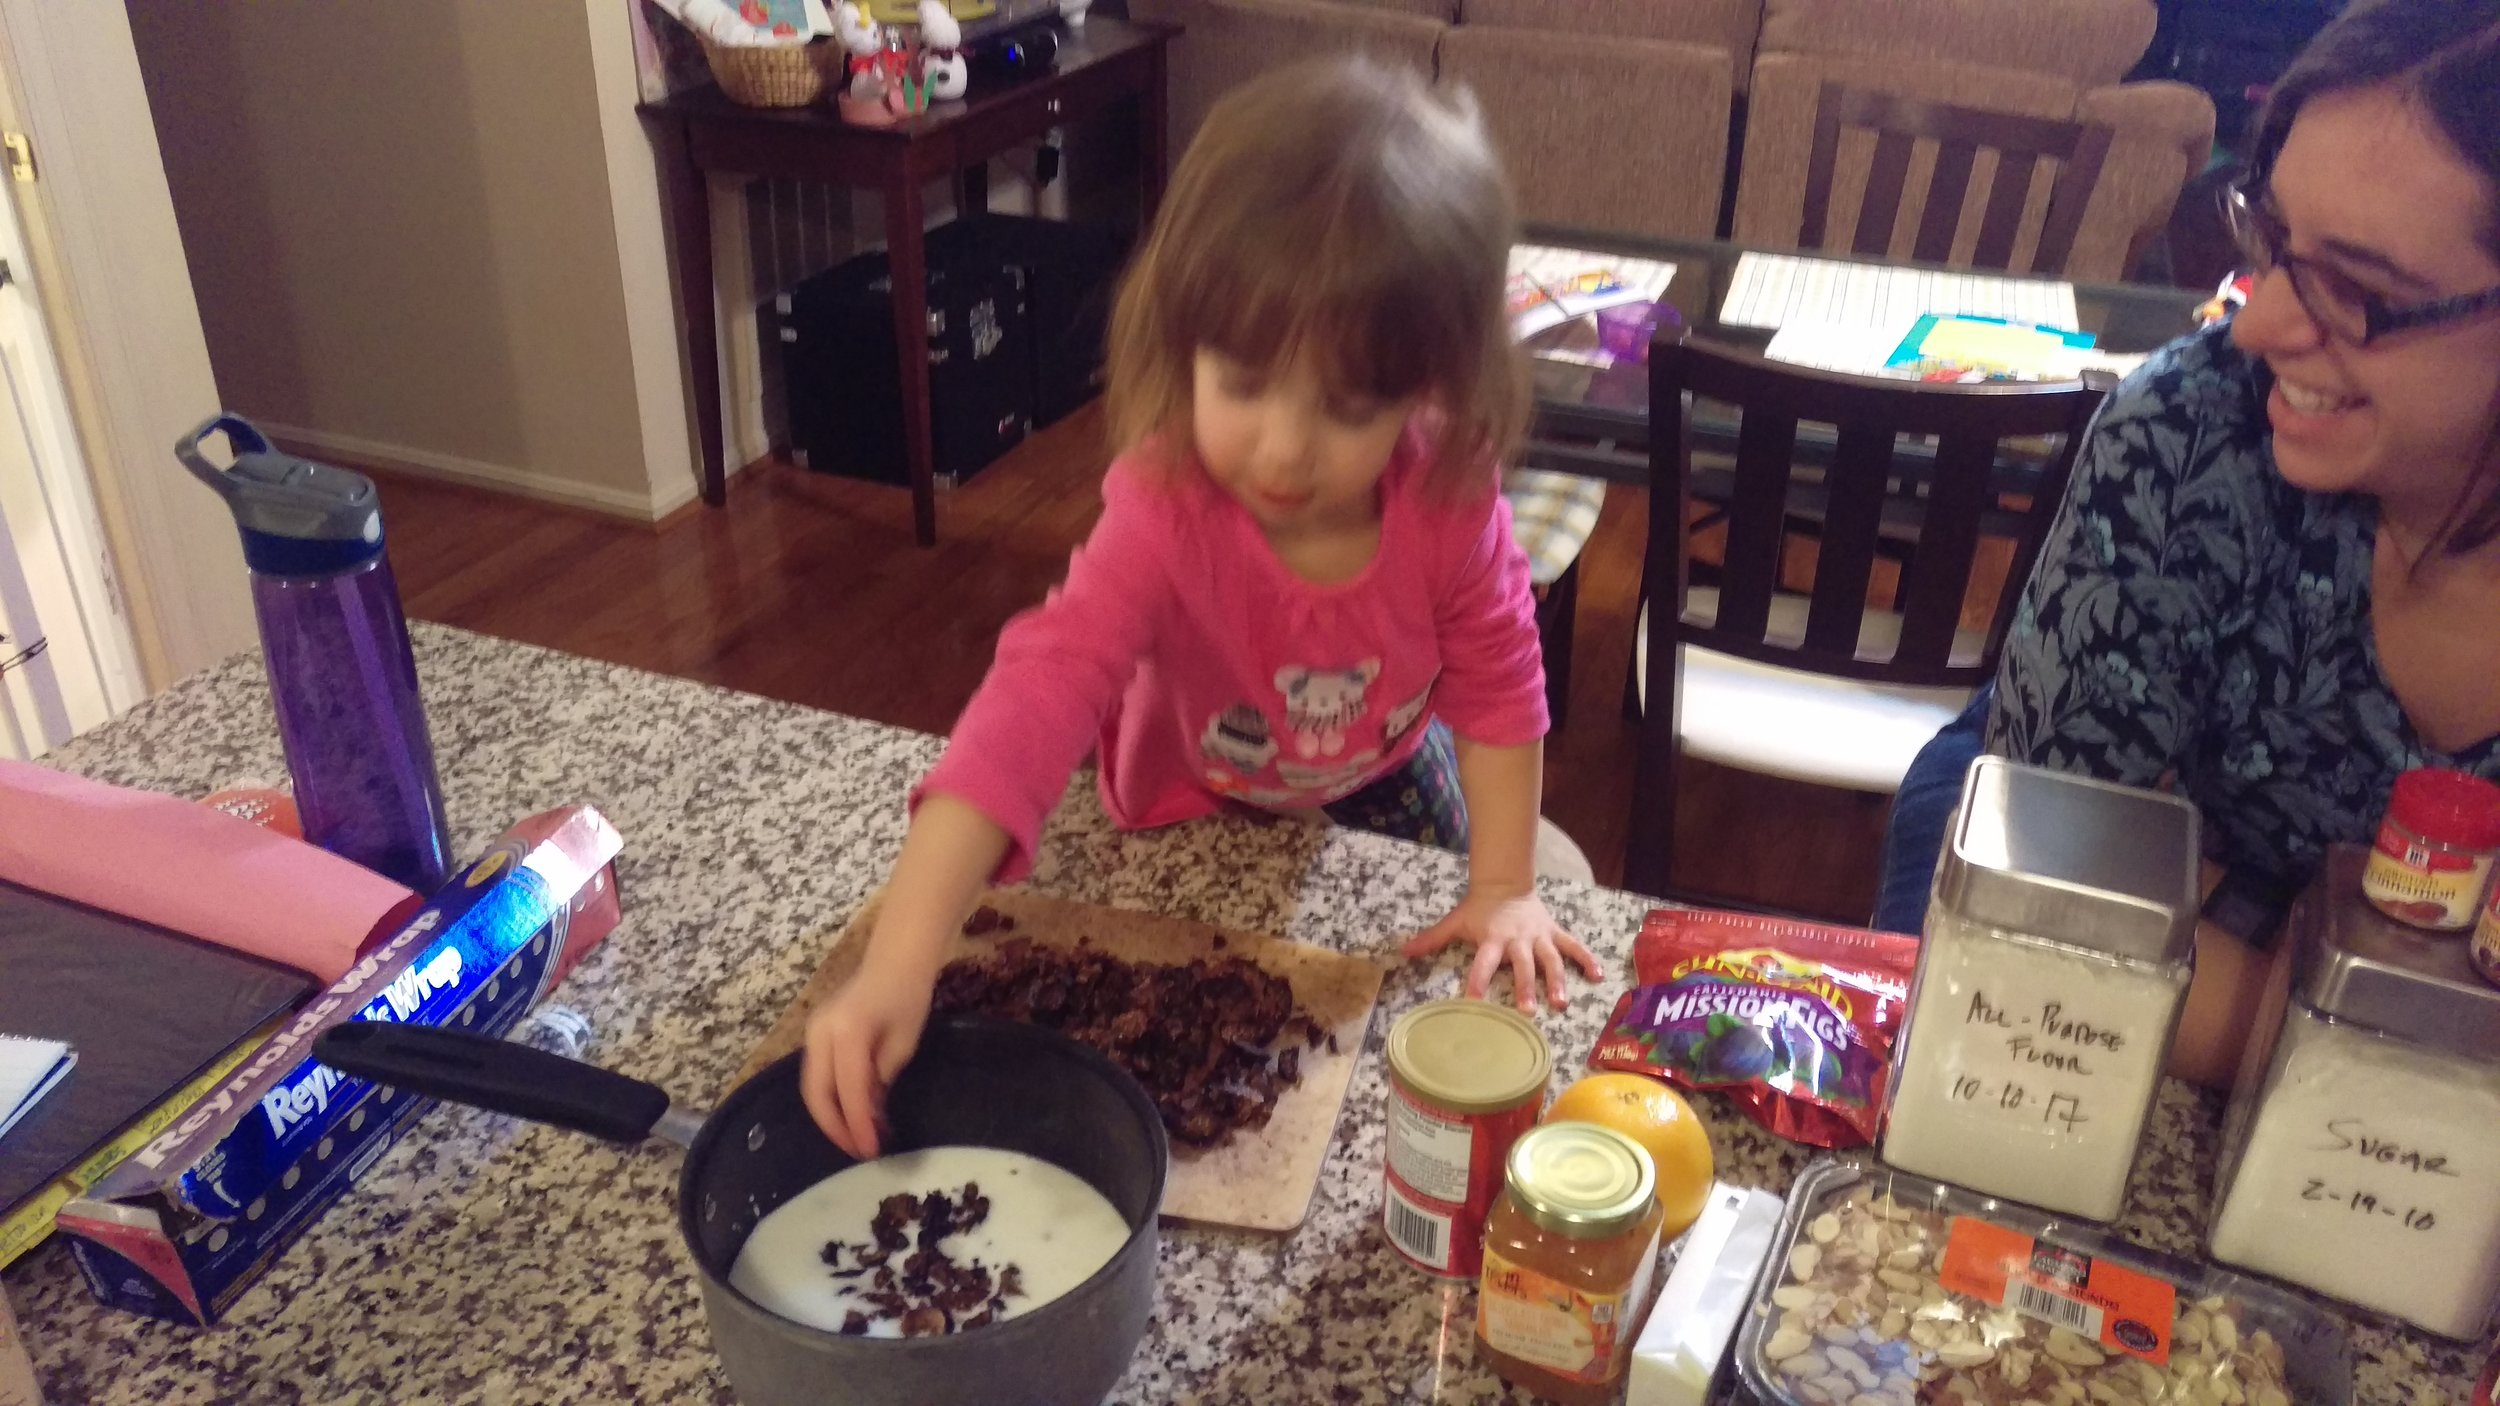 My sous-chef